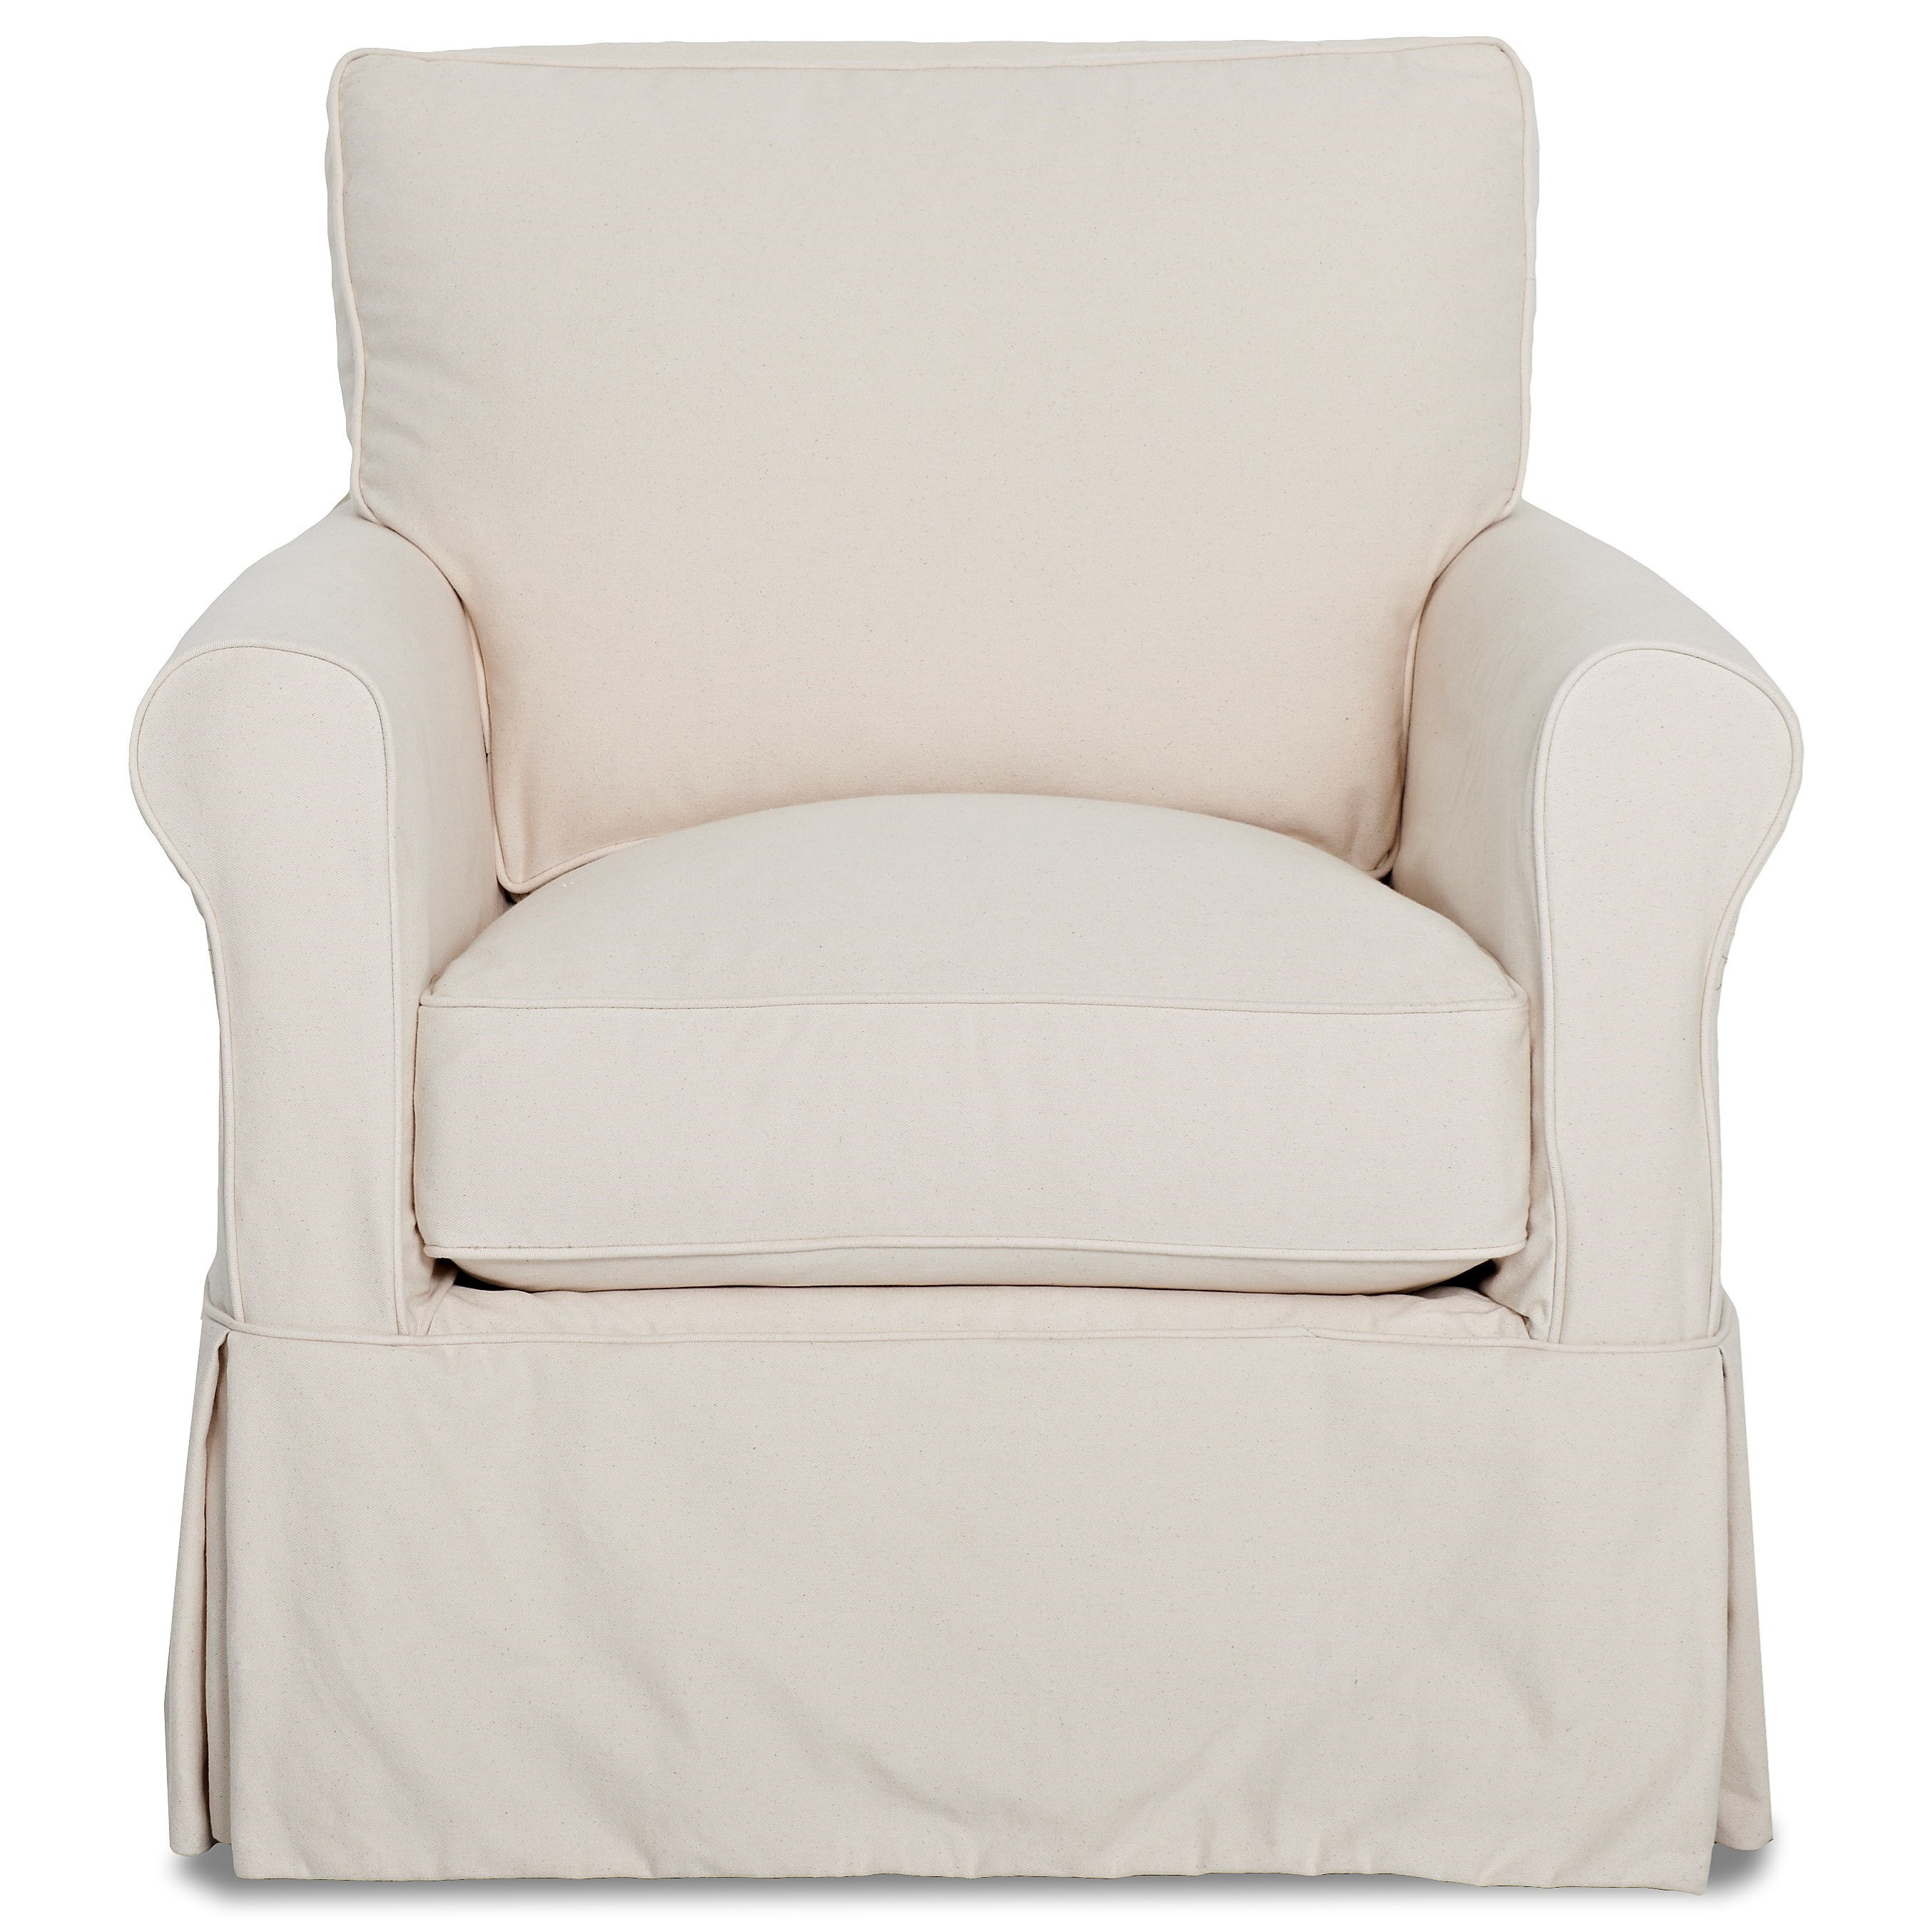 Klaussner Kenmore Chair with Slipcover - Item Number: D7122 C